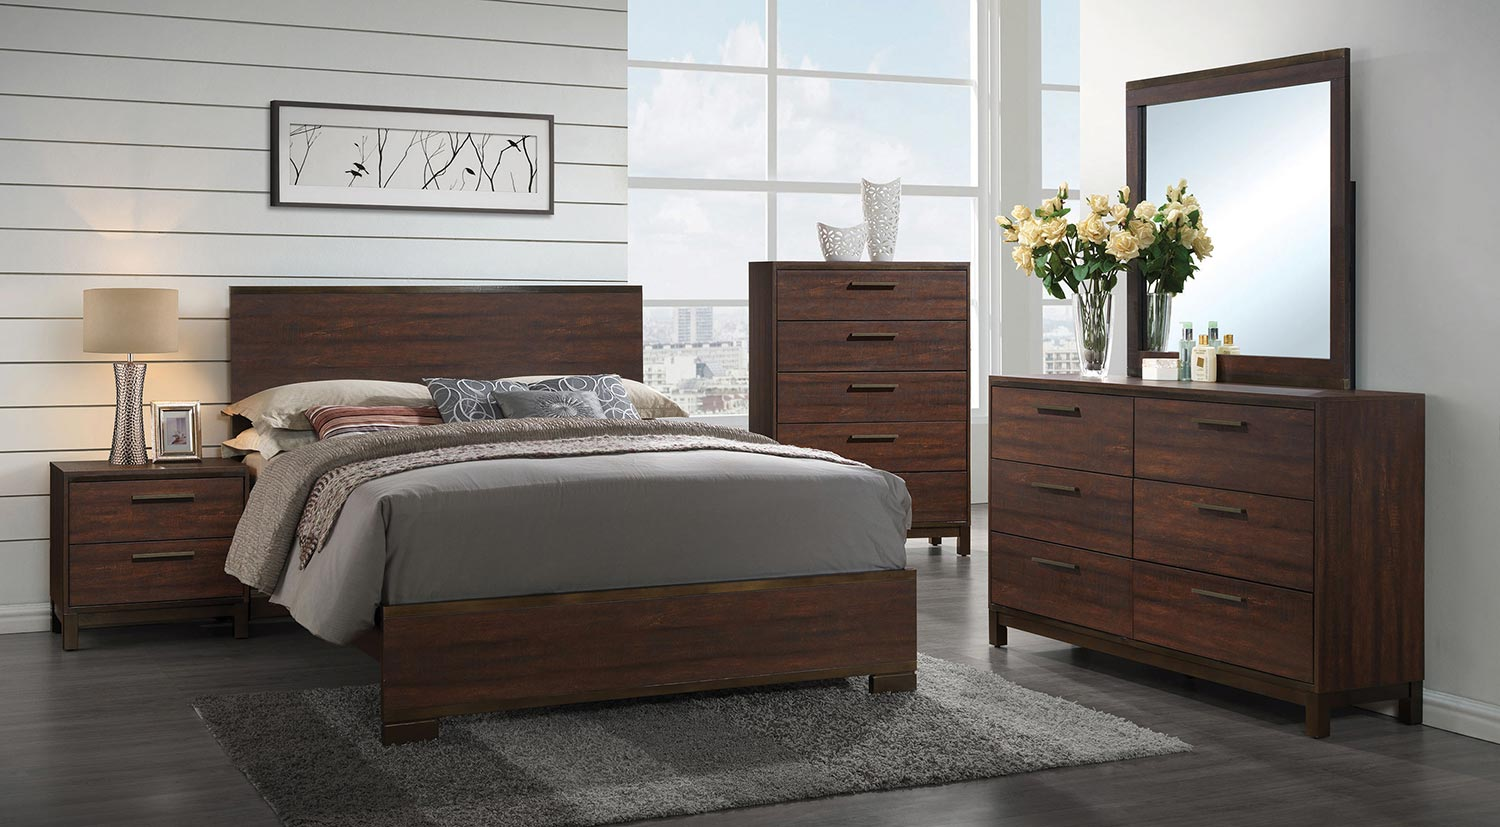 Coaster Edmonton Bedroom Set Tobacco BEDROOM SET at Homelement